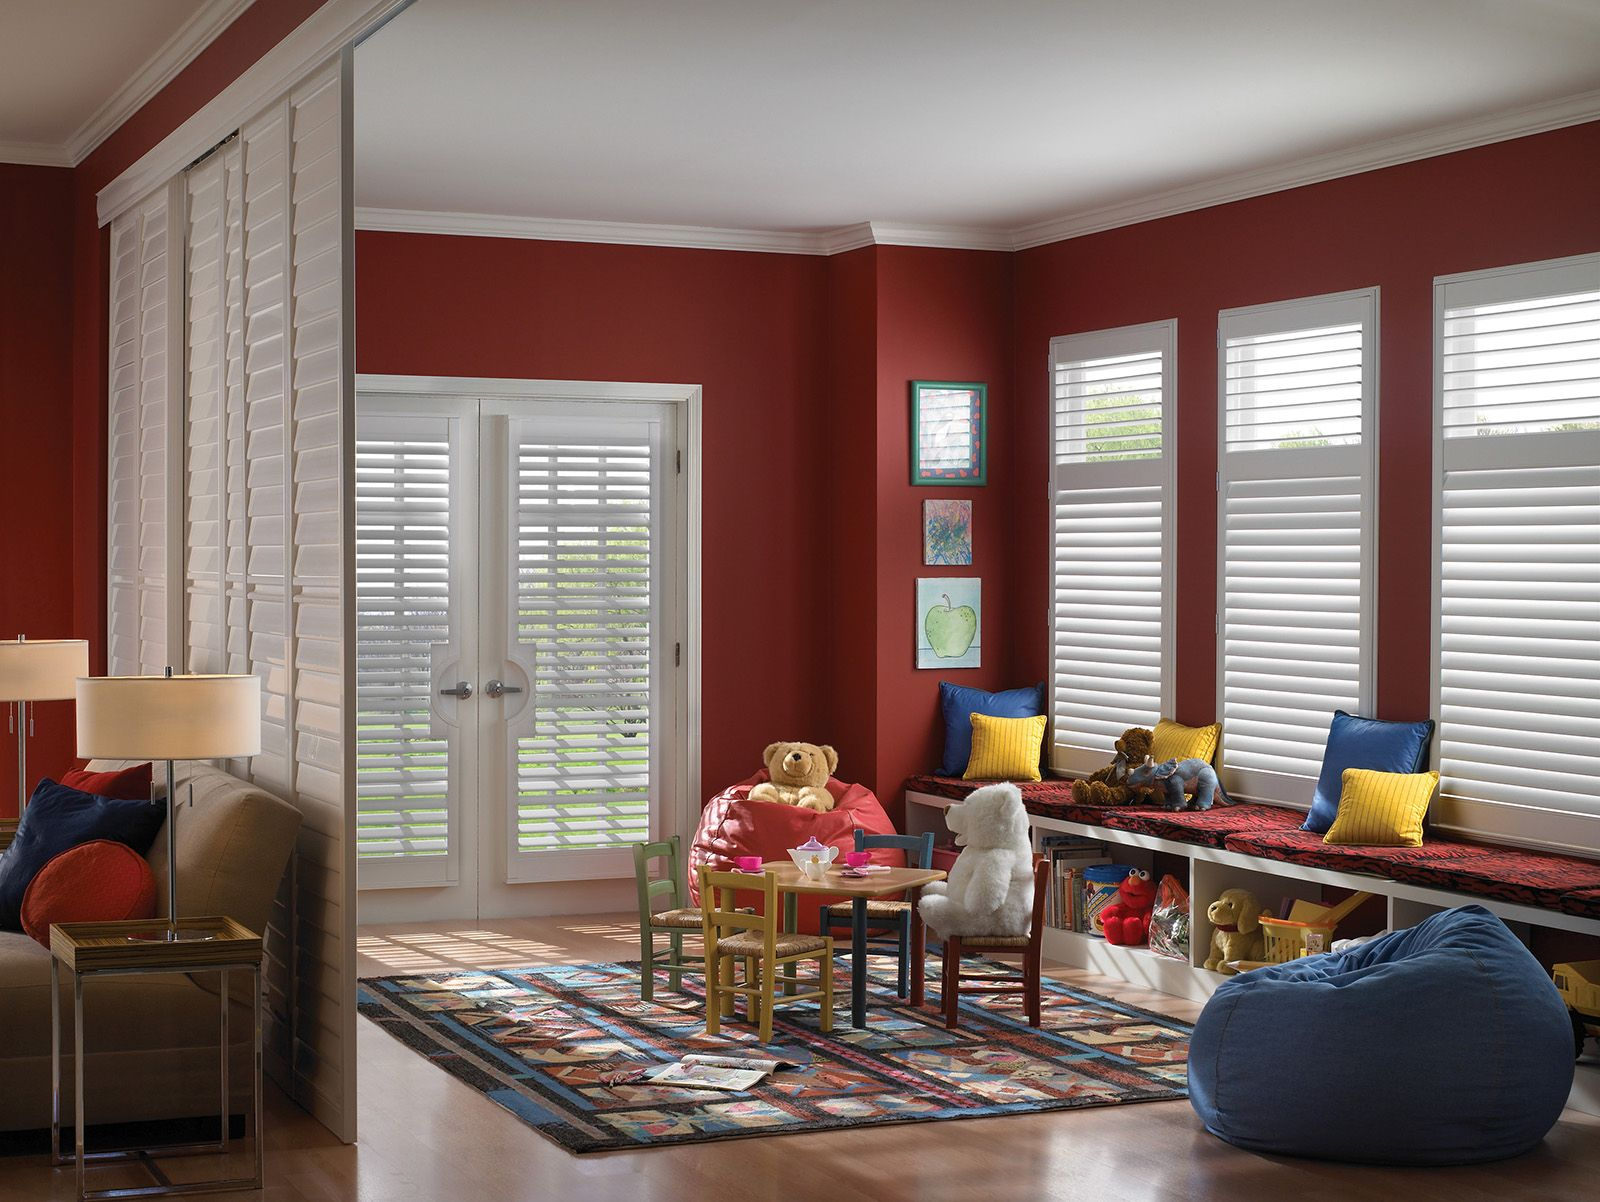 Cotton • 3½ inch louvers on Room Divider/By-Pass Track System with Decorative Valance • 2½ inch louvers on French Door Cut-out and windows • Divider Rail • UltraClearview® hidden rear tilt